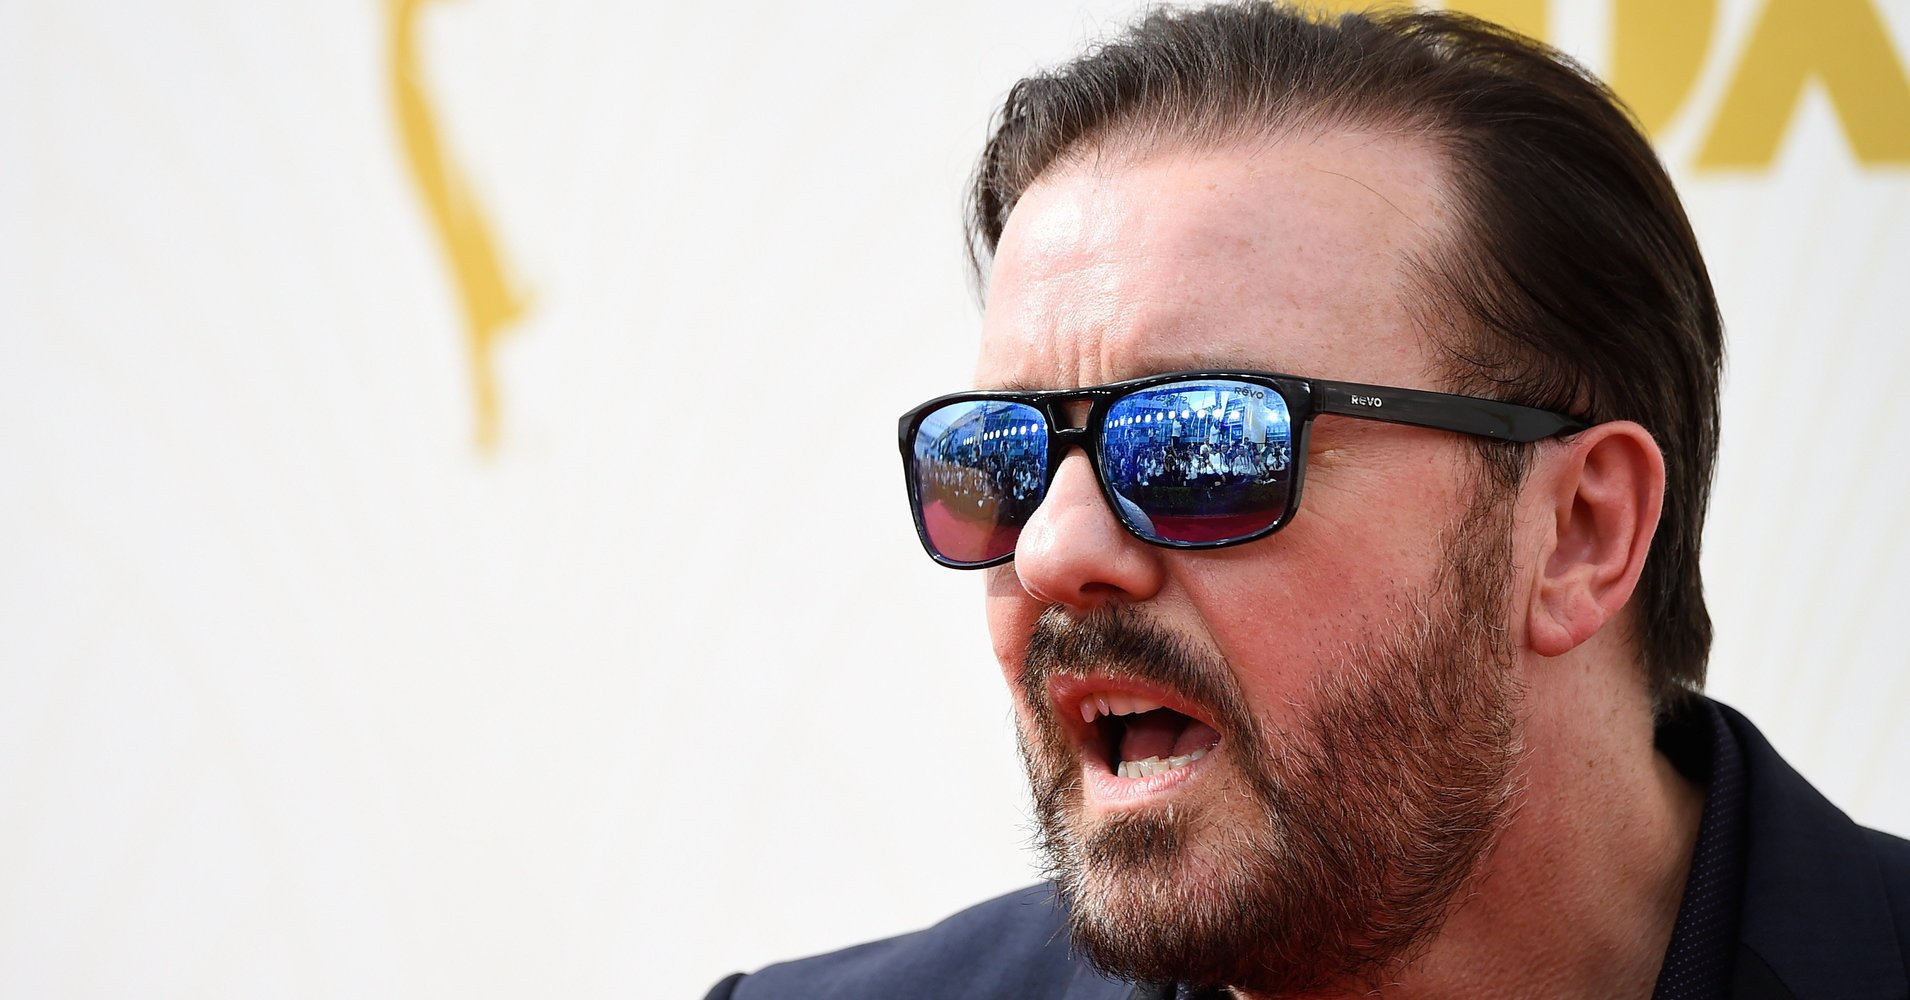 RT @HuffPostEnt: Ricky Gervais stands up for truth in the age of fake news https://t.co/4UIitRhbaD https://t.co/19drCLueL7